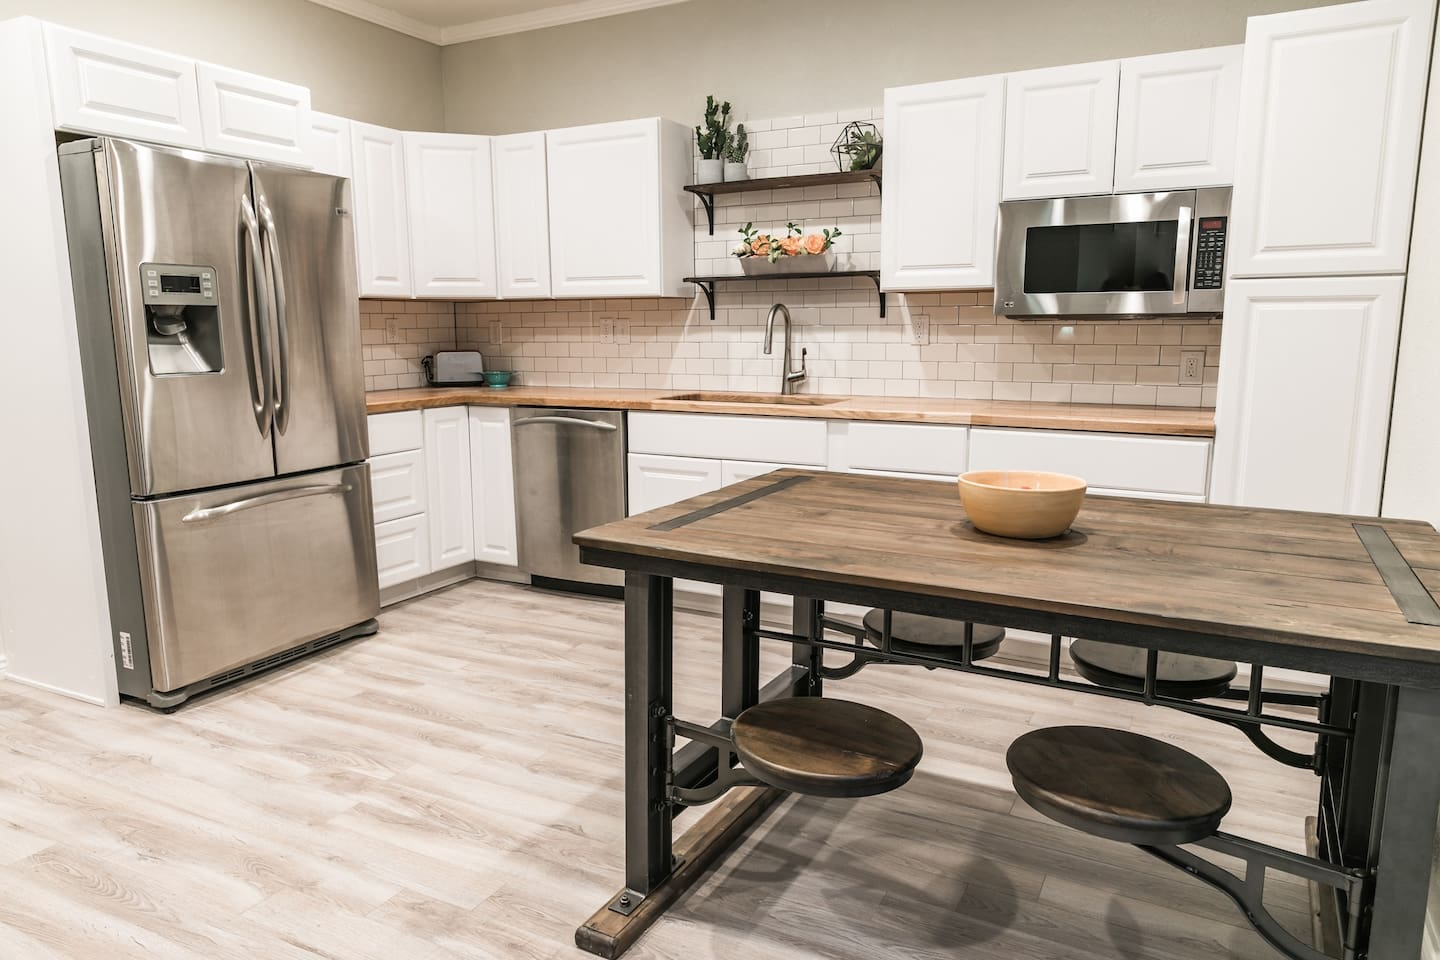 Stainless steel appliances and white subway tile keep this space bright and fun.